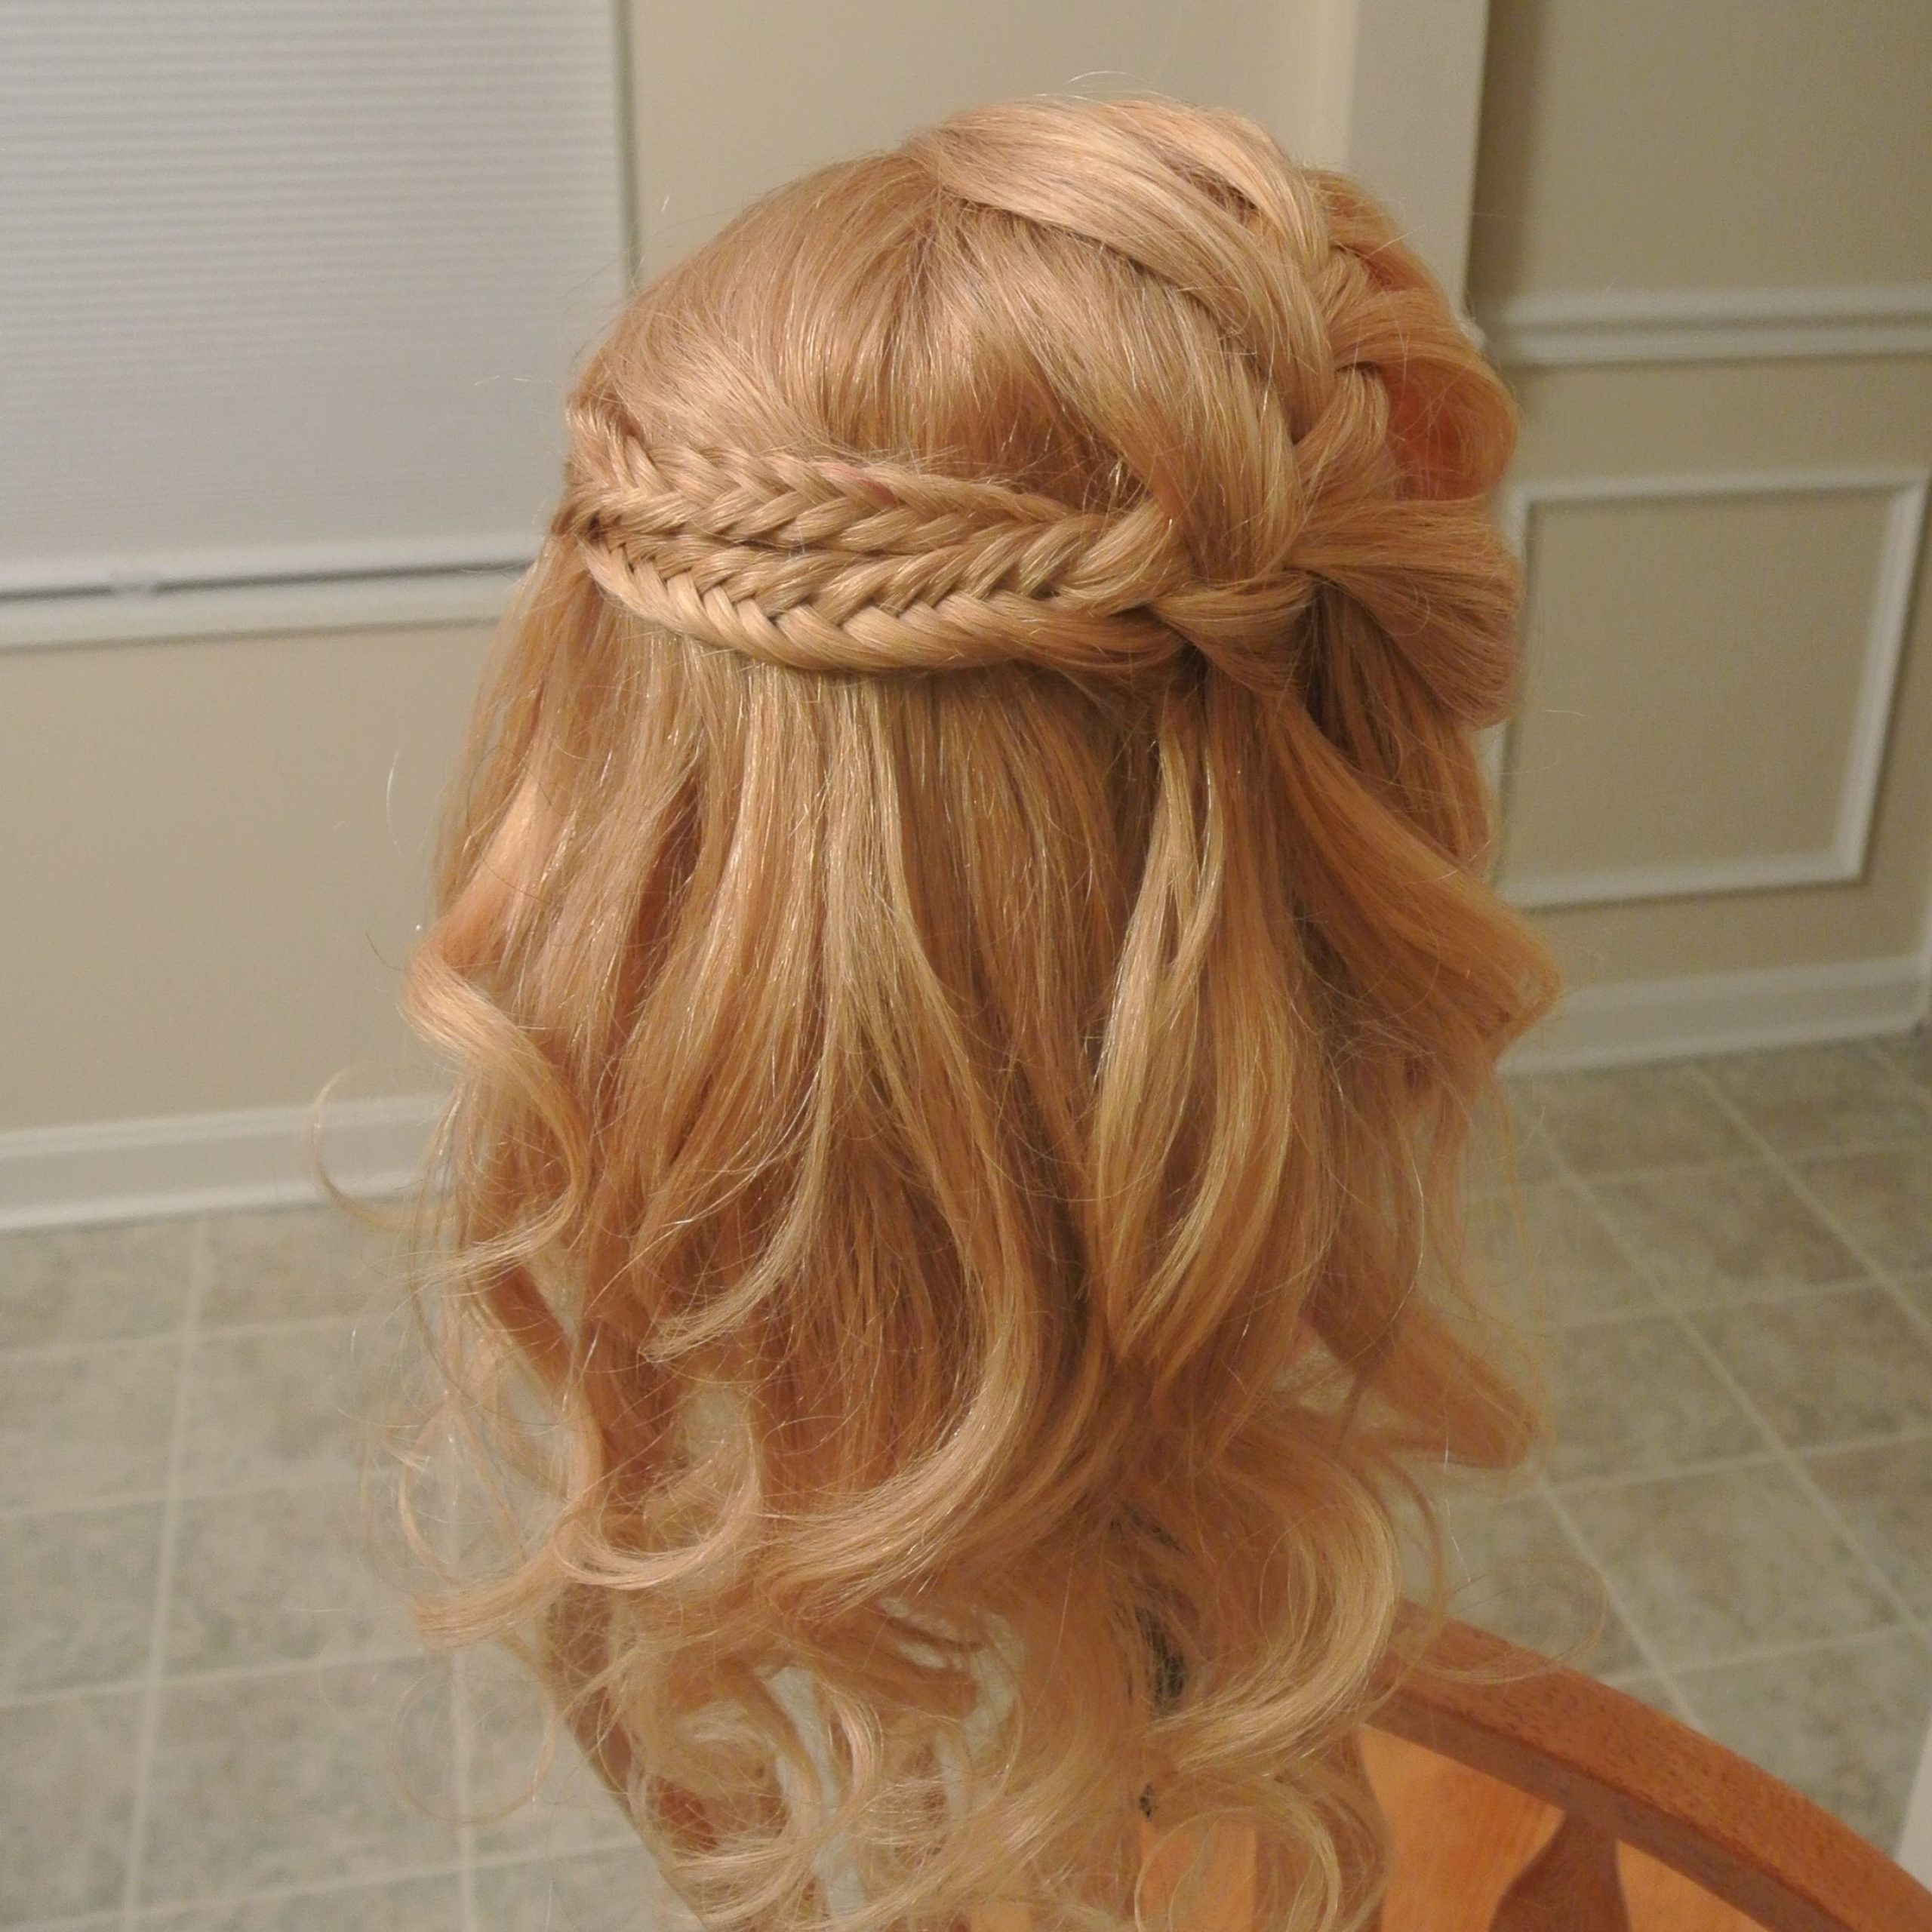 Waterfall Braid Into Fishtail Braids, Crown Of Braids Pertaining To Newest Bridal Crown Braid Hairstyles (View 5 of 20)